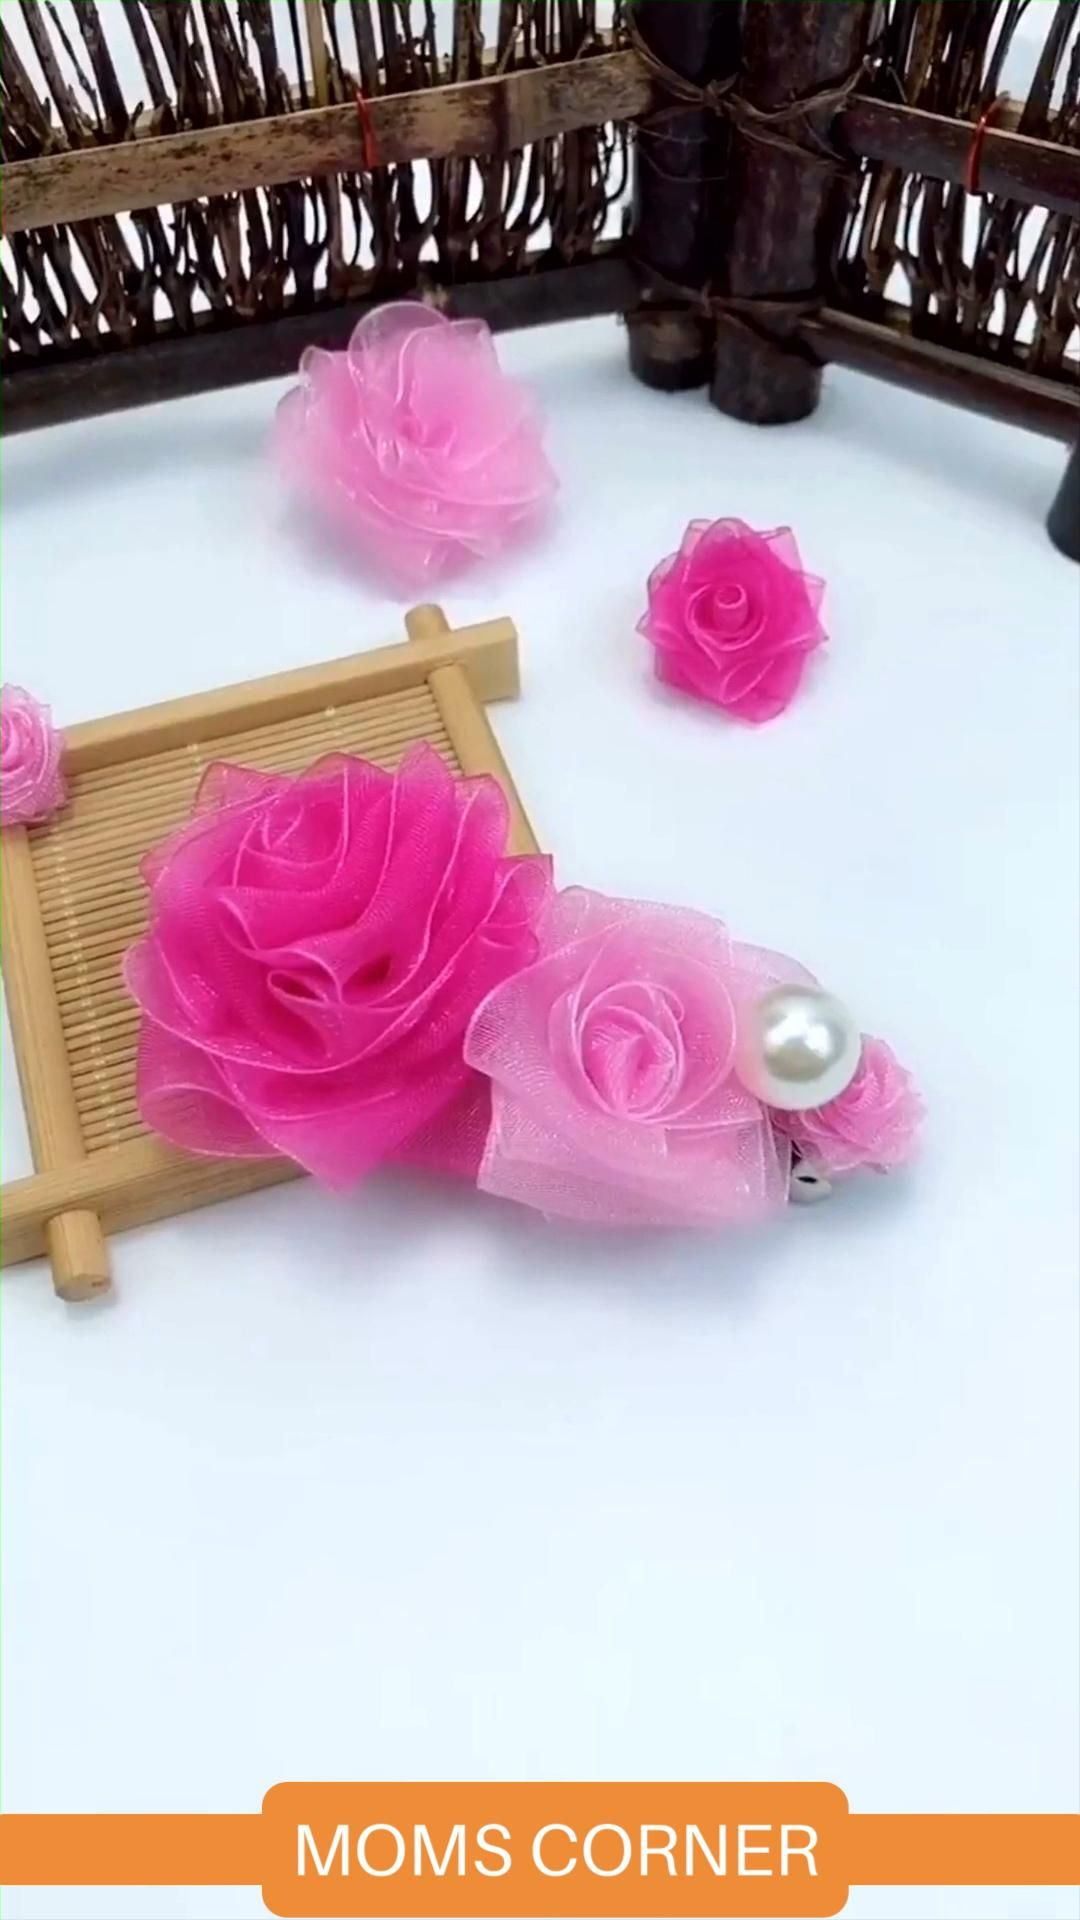 Artificial flower art